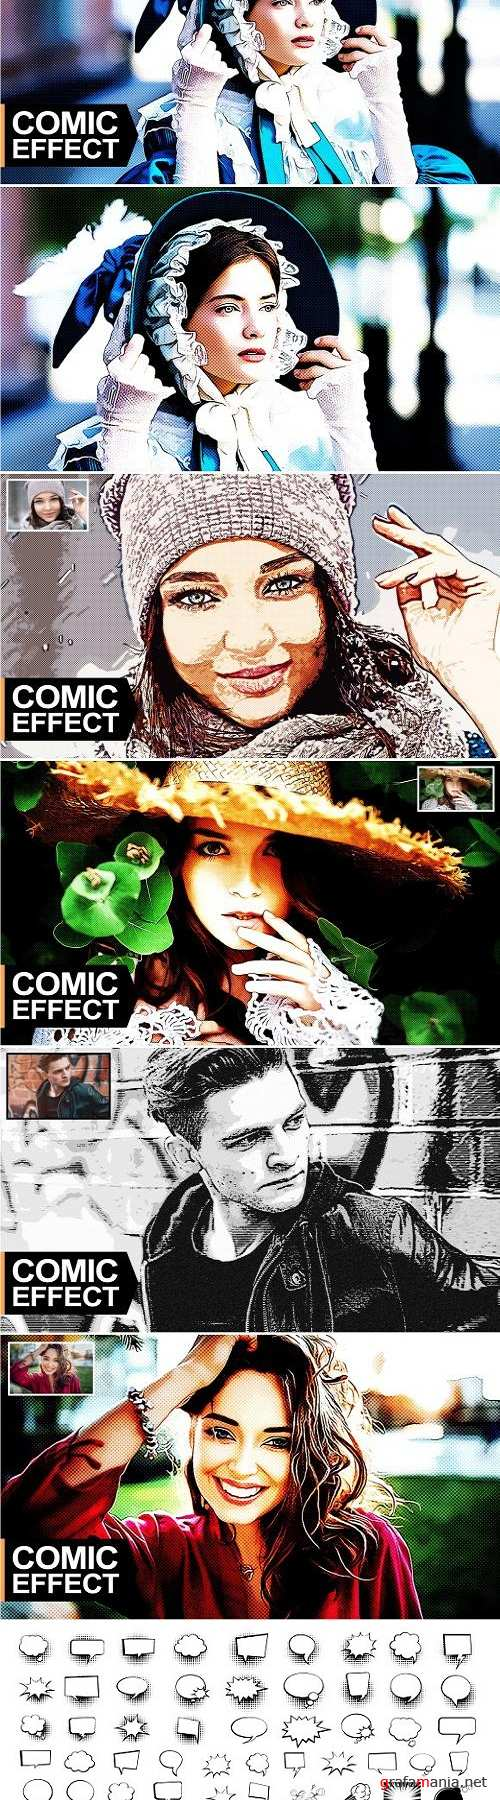 Comic Effect PS Action - 3217043